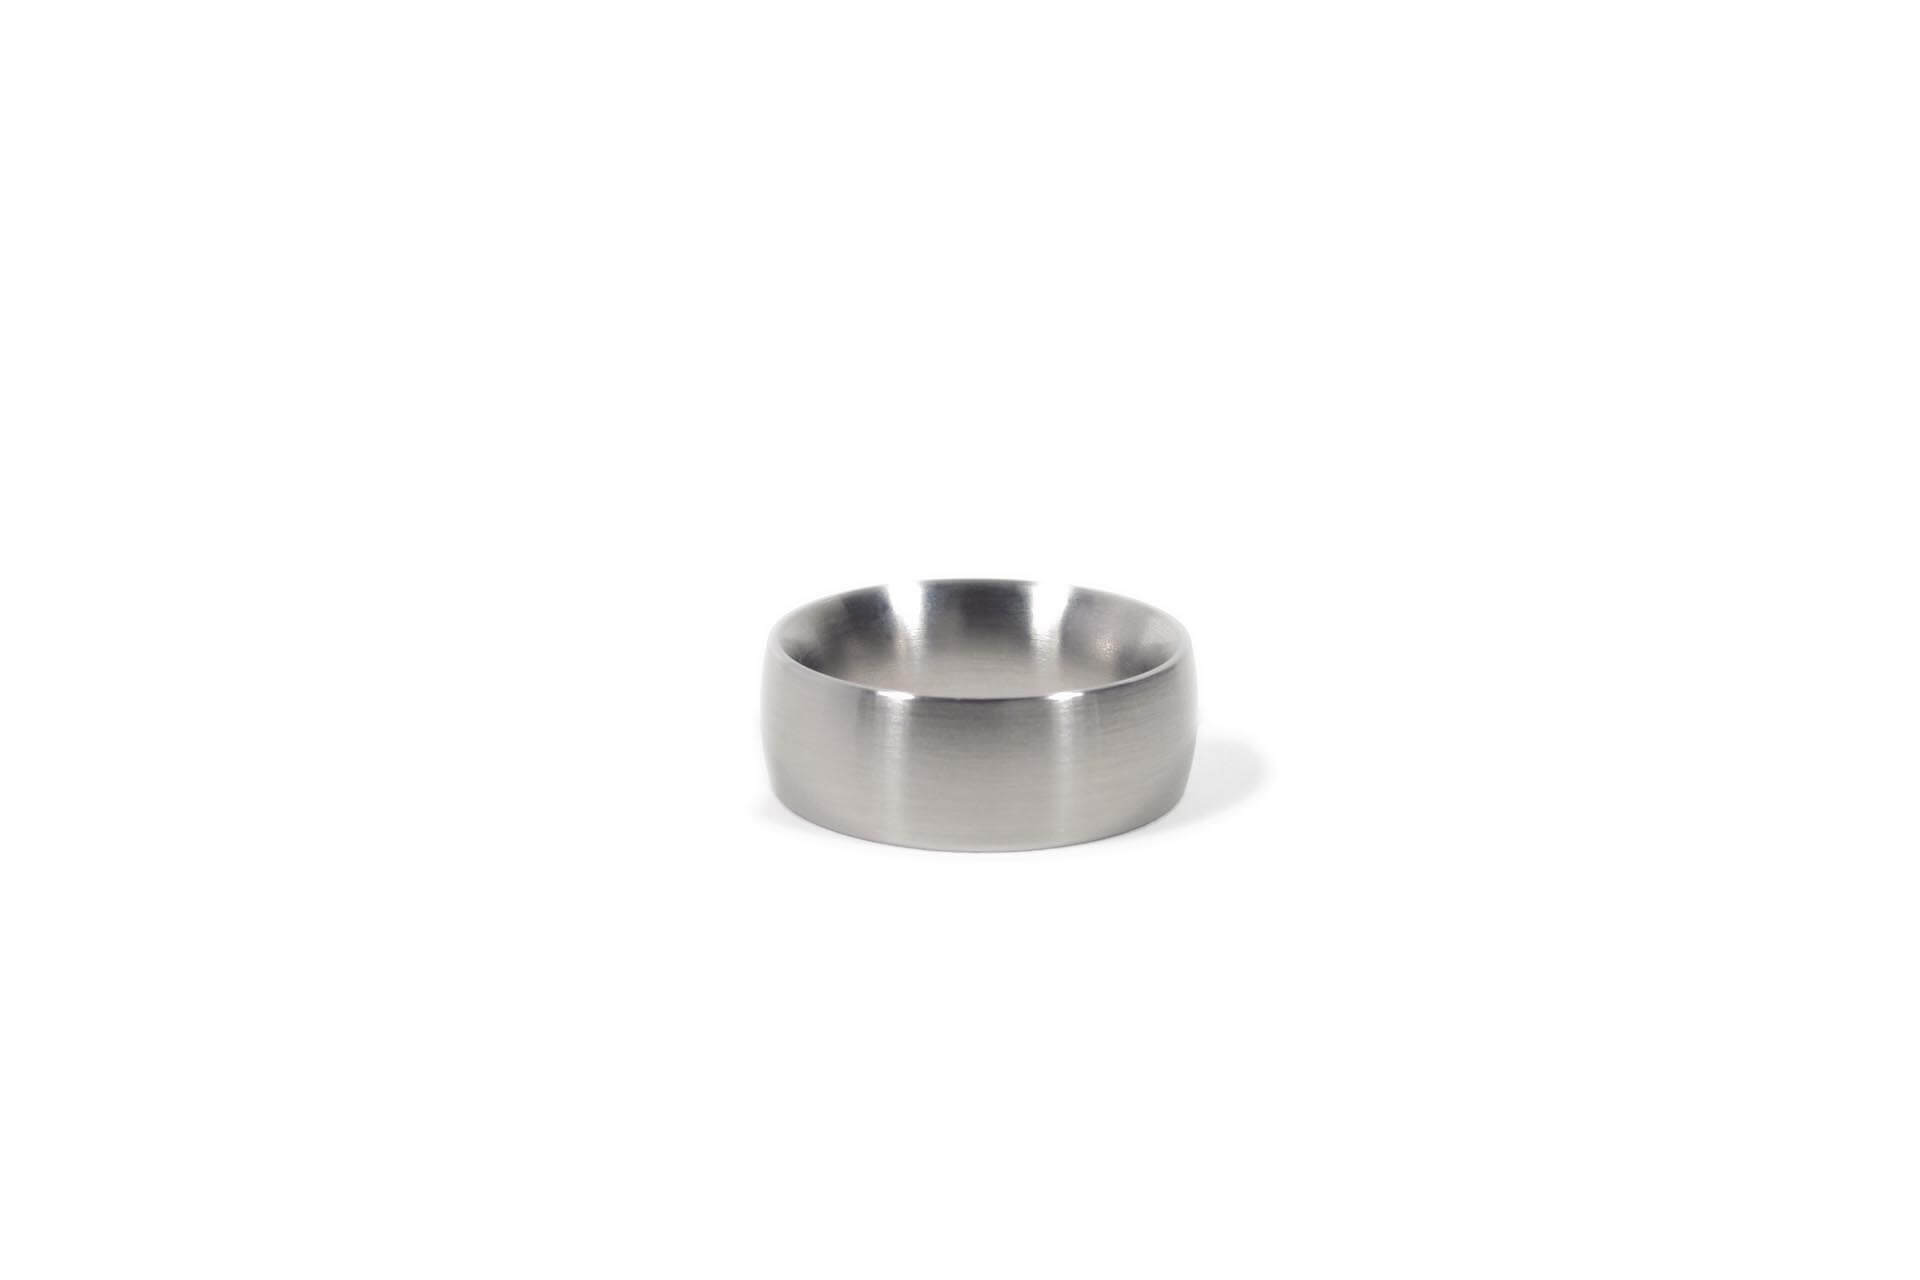 Stainless steel oval ring, side view.